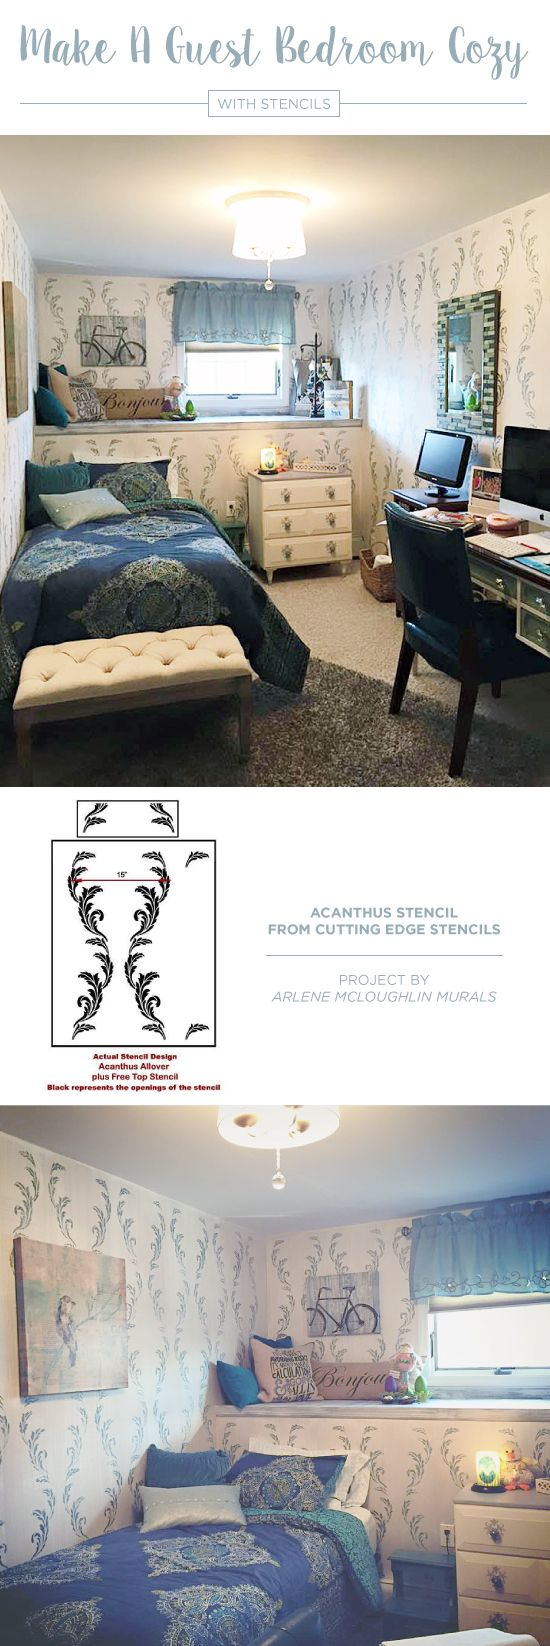 220 best flower stencils decor images on pinterest stencil a stenciled guest bedroom accent wall using the acanthus allover stencil a popular flower wall amipublicfo Image collections